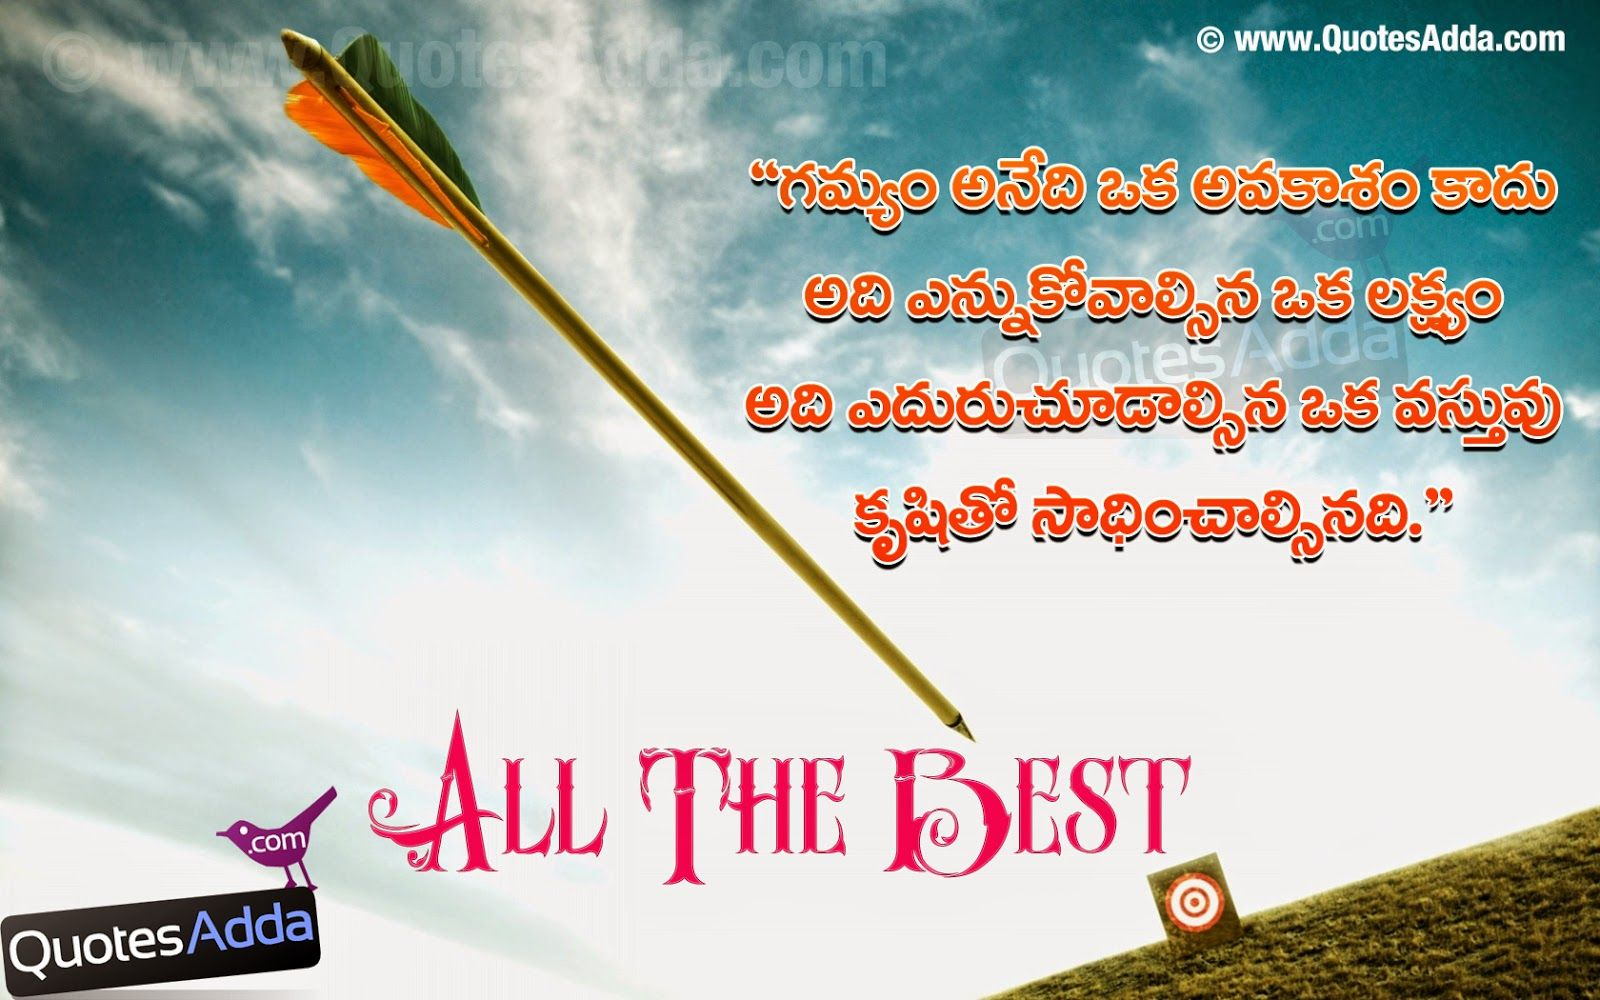 All the best telugu greetings online quotesadda telugu all the best telugu greetings online quotesadda telugu quotes tamil quotes kristyandbryce Image collections